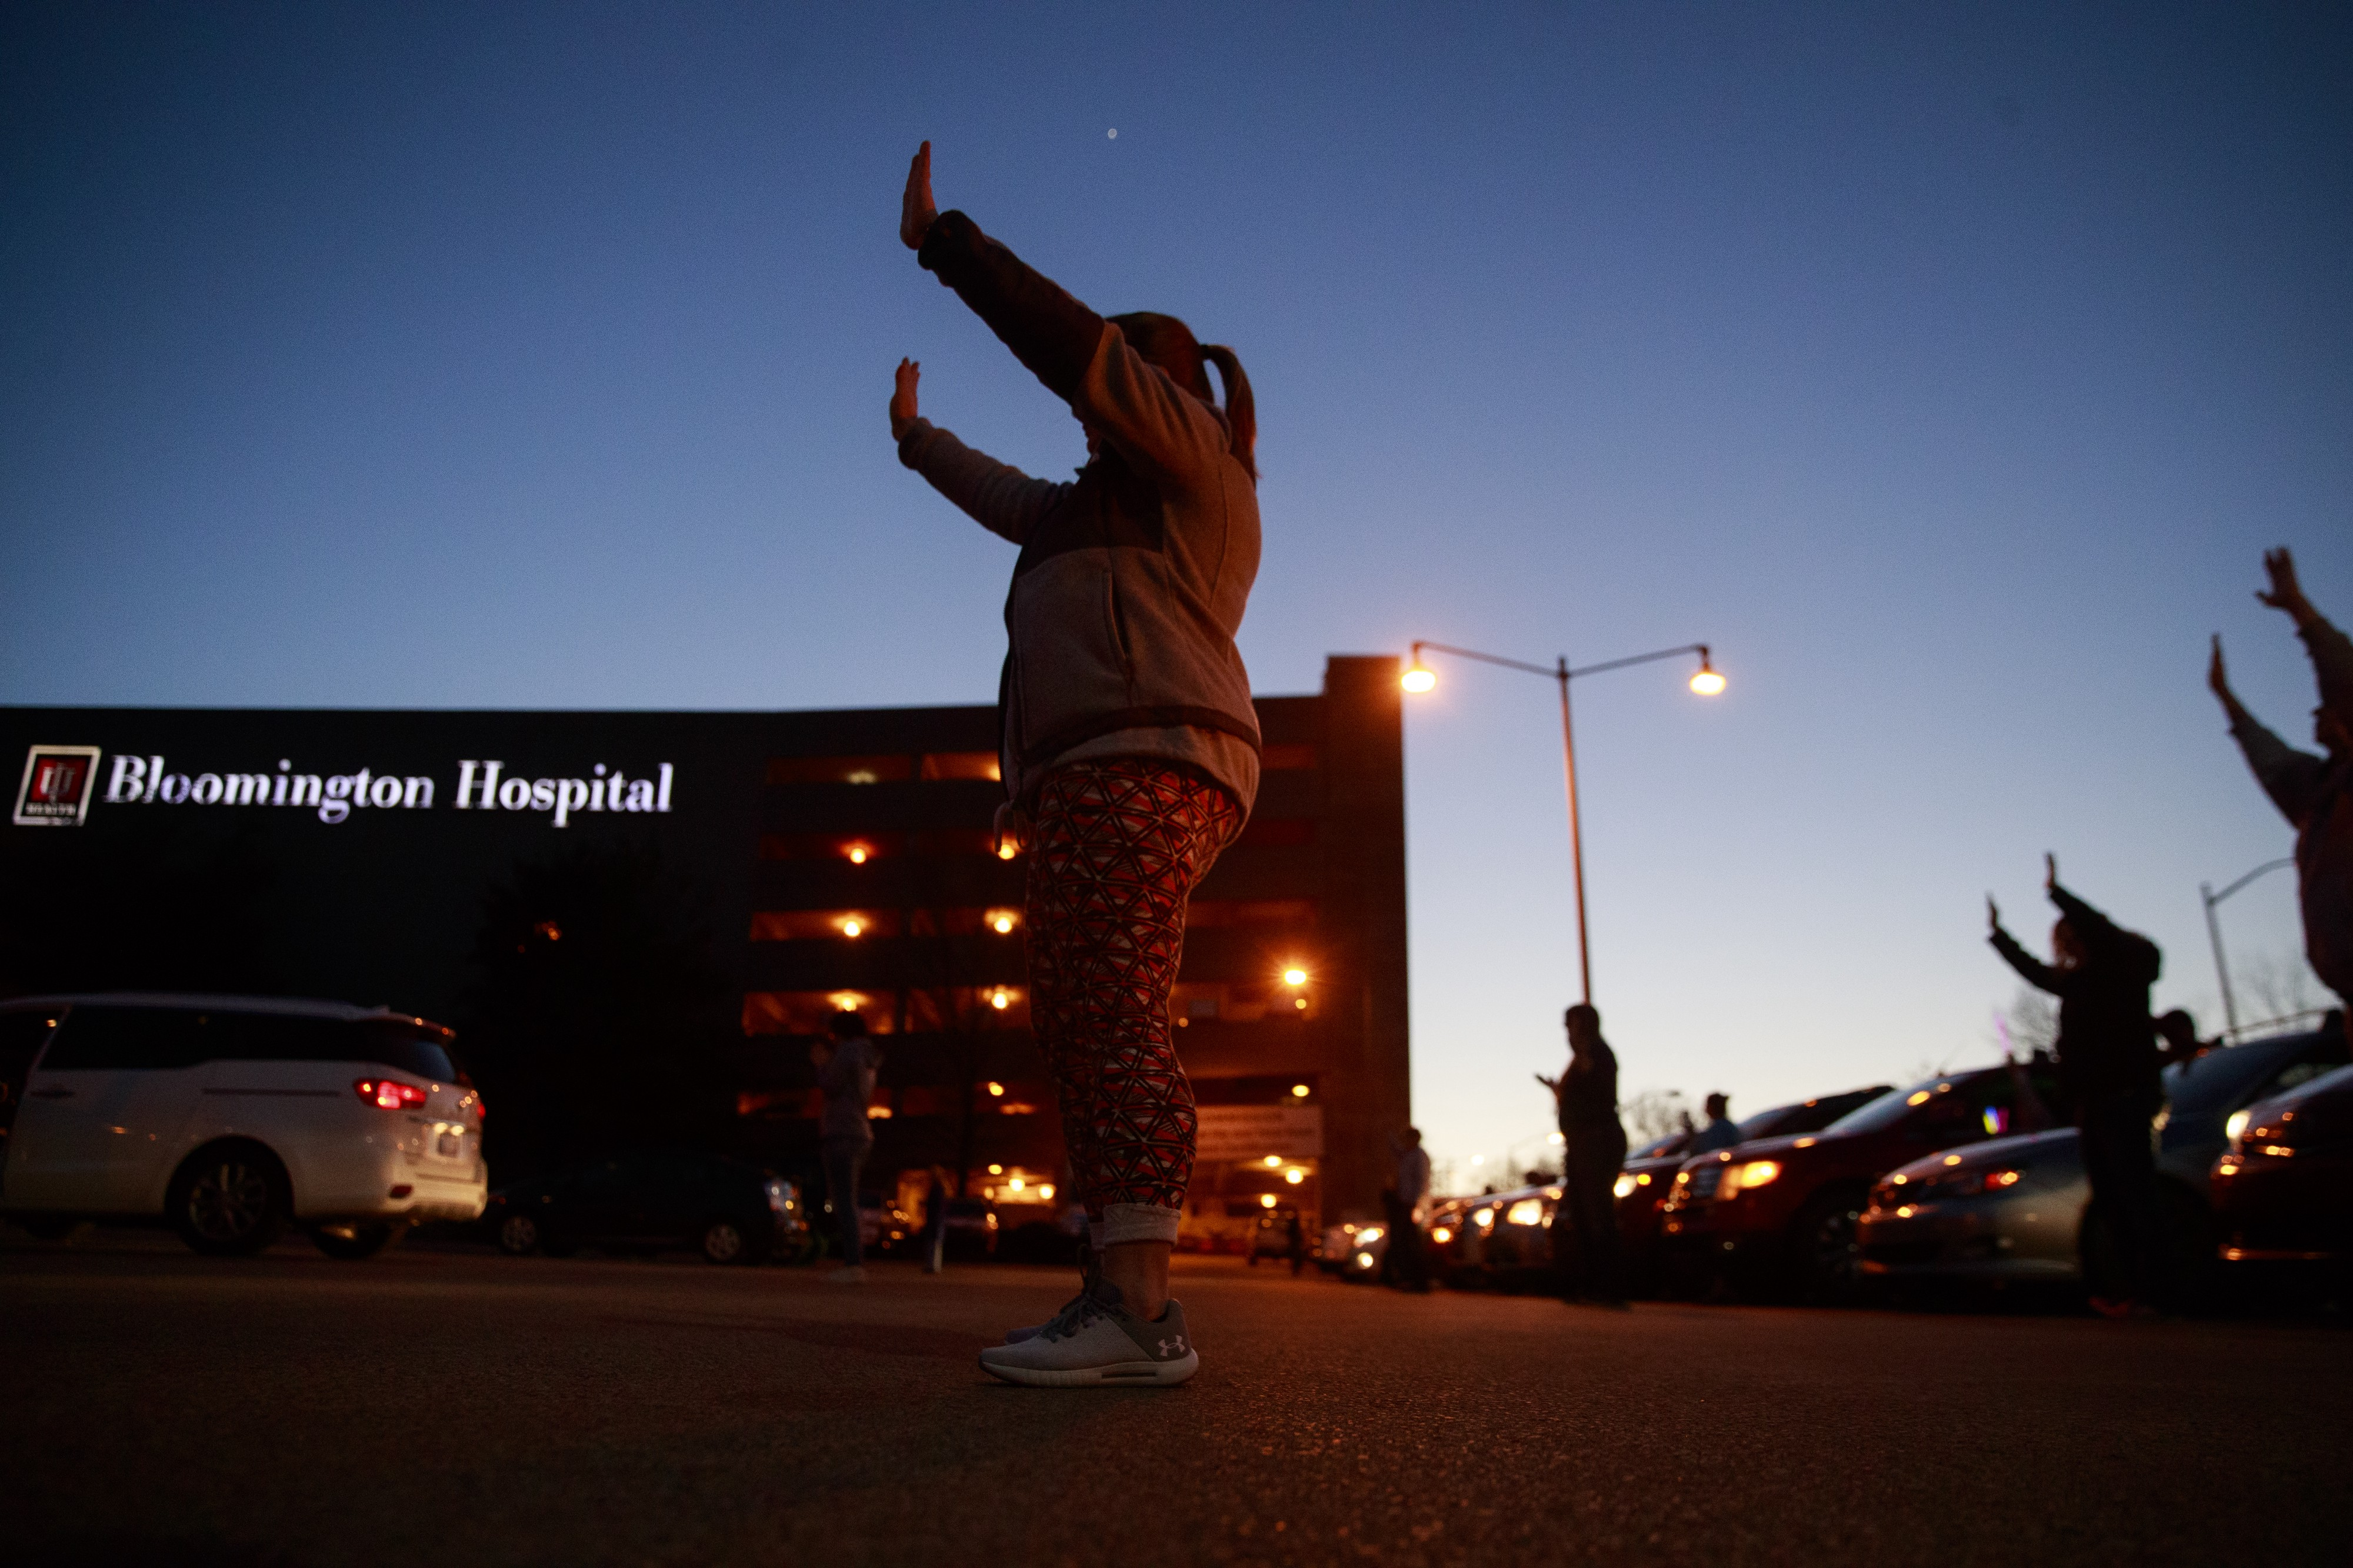 Members from the Lighthouse Fellowship Church gather on a Sunday night outside the Bloomington Hospital to pray for doctors,